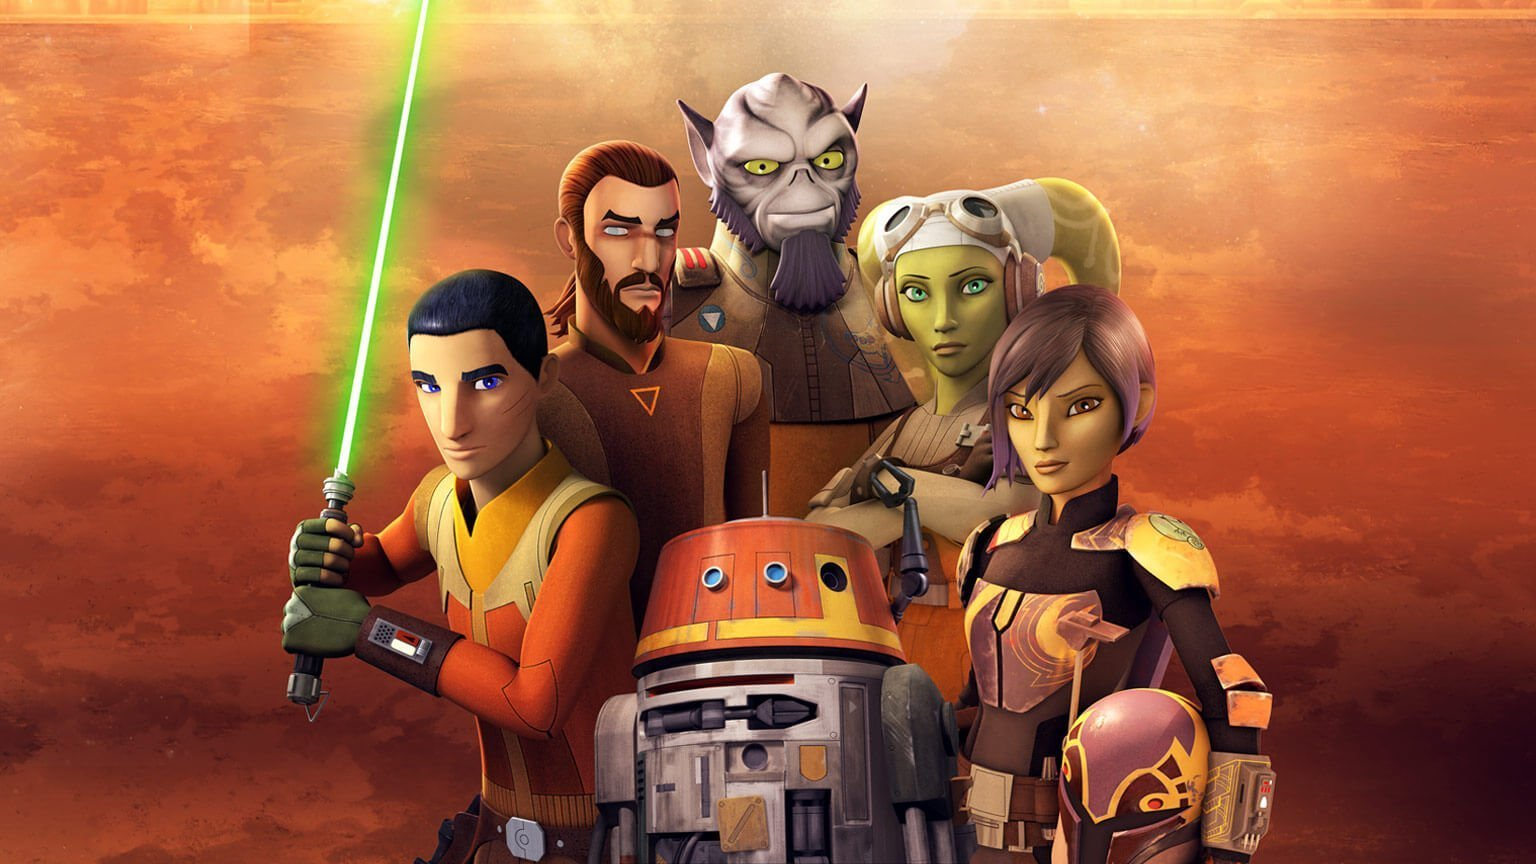 Star Wars Rebels gathered together